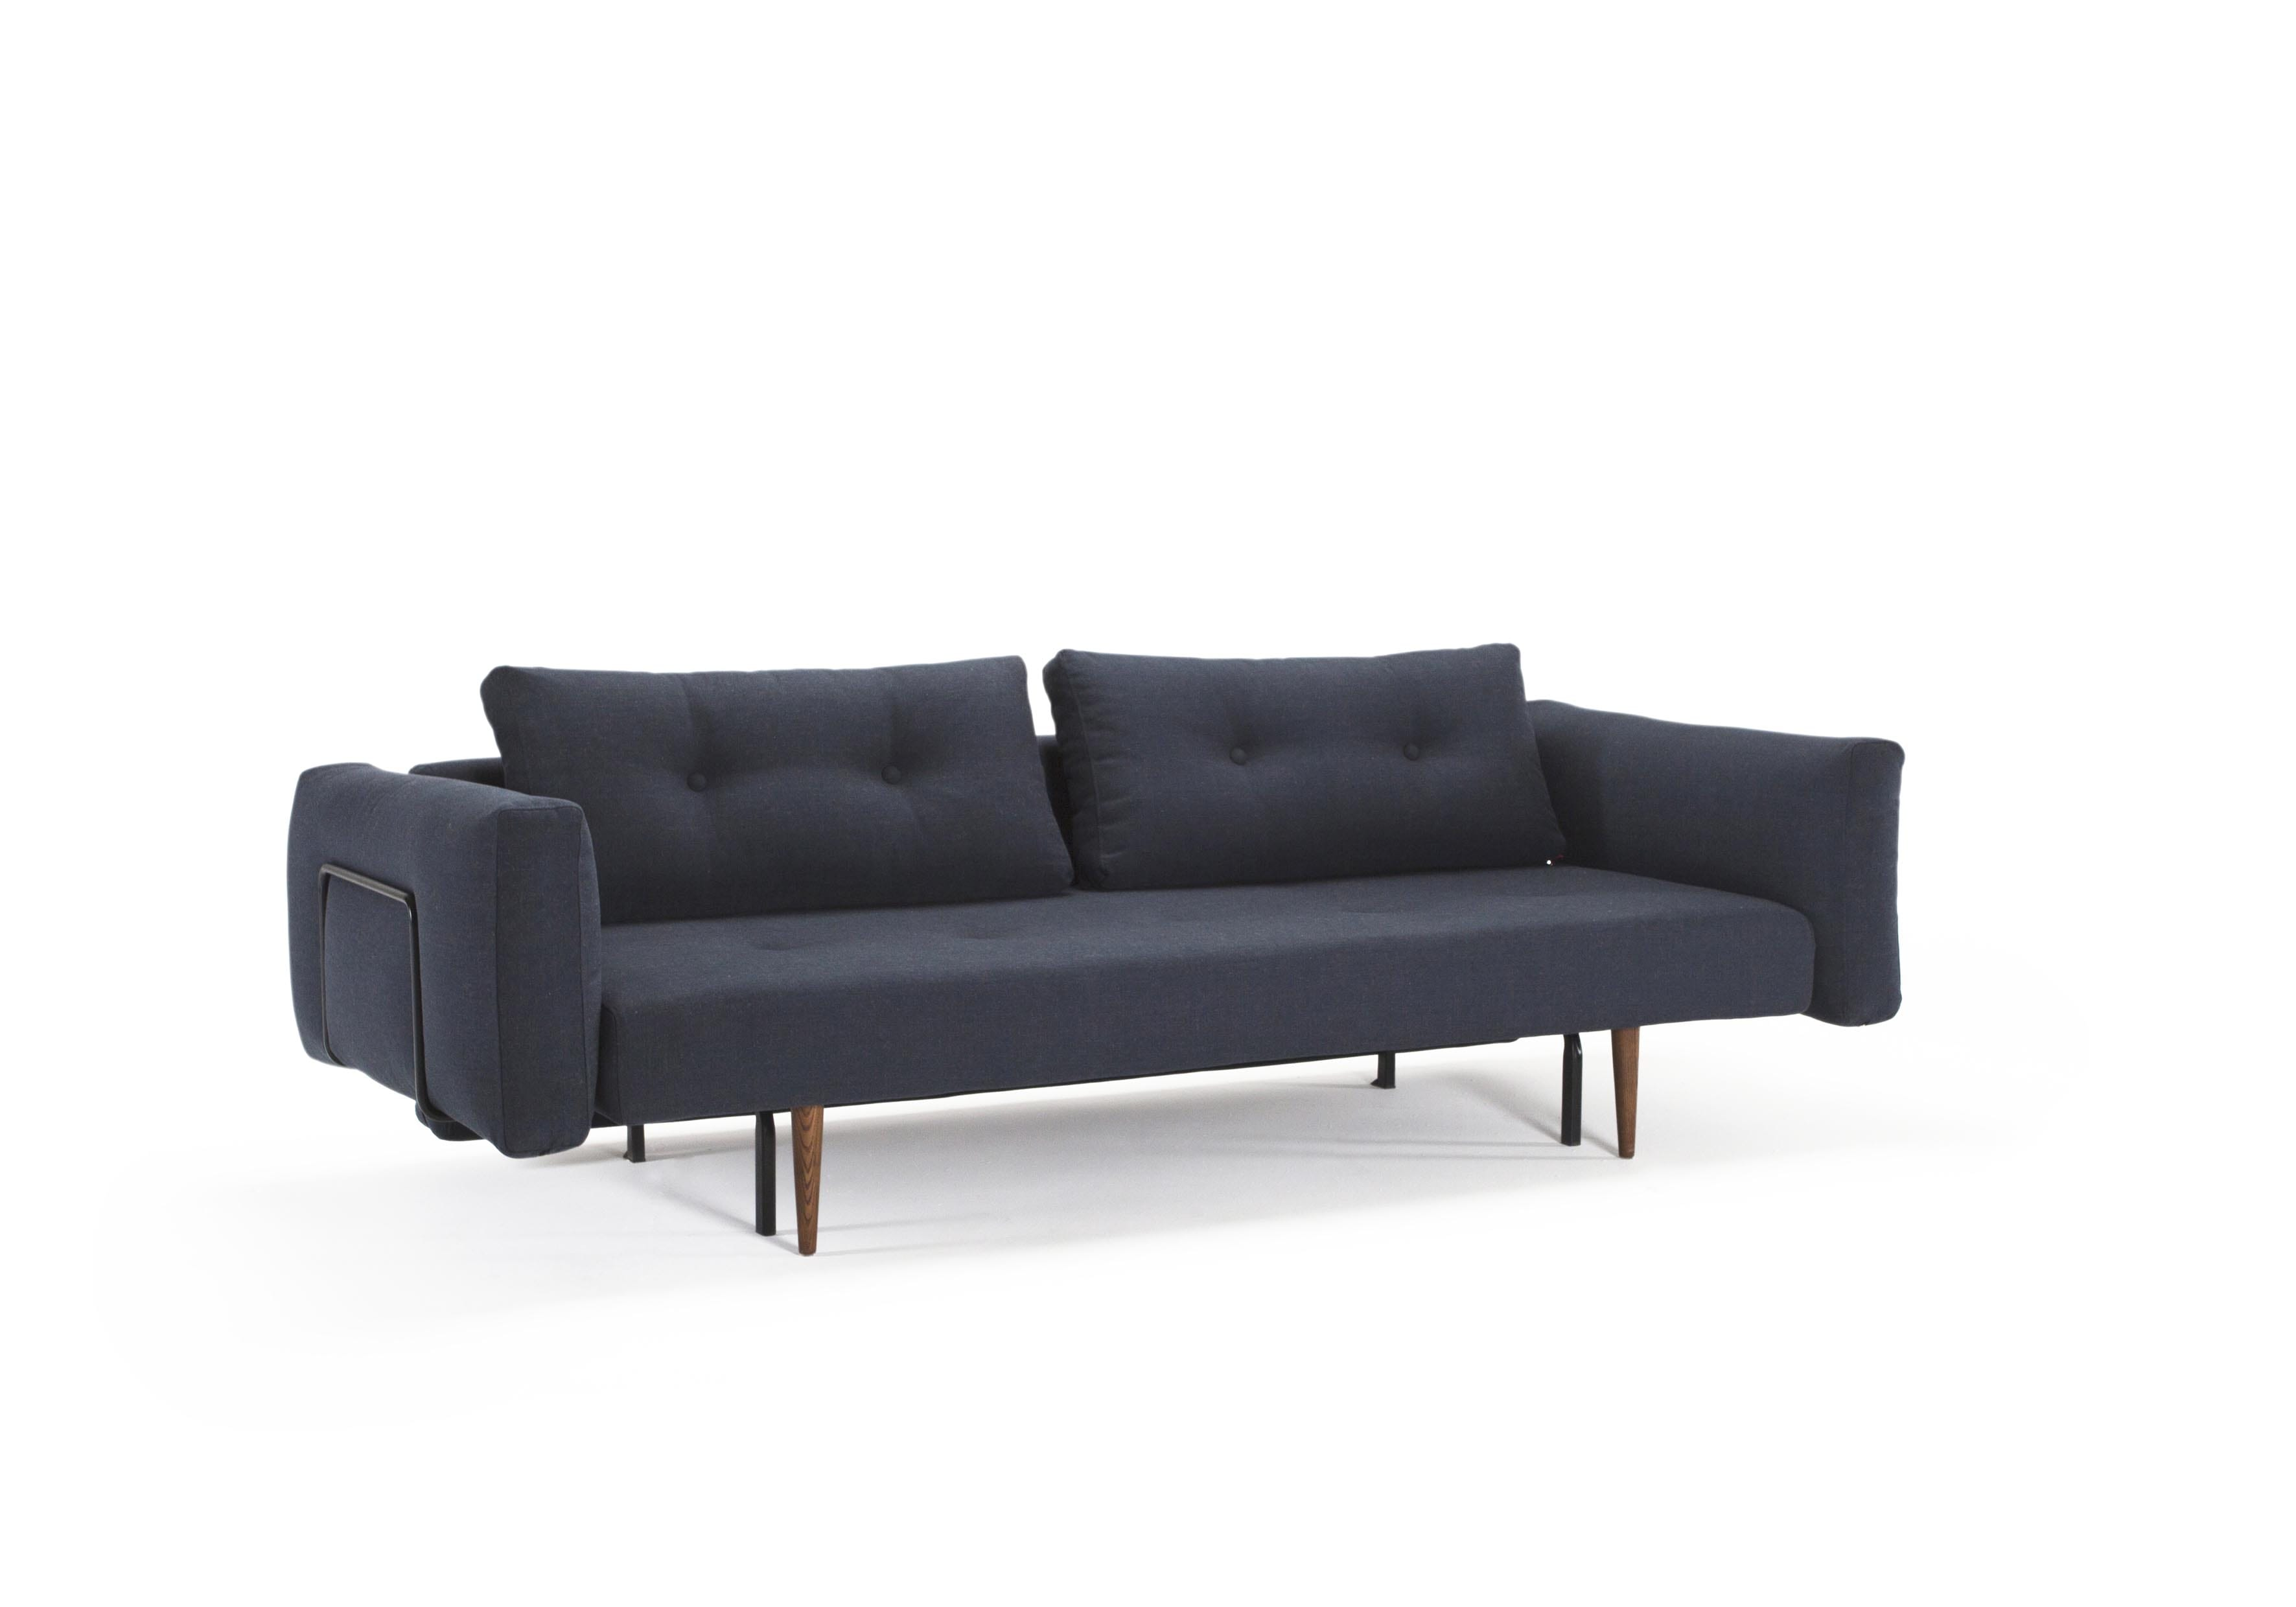 Recast Sofa Bed w Arms Full Size Nist Blue by Innovation